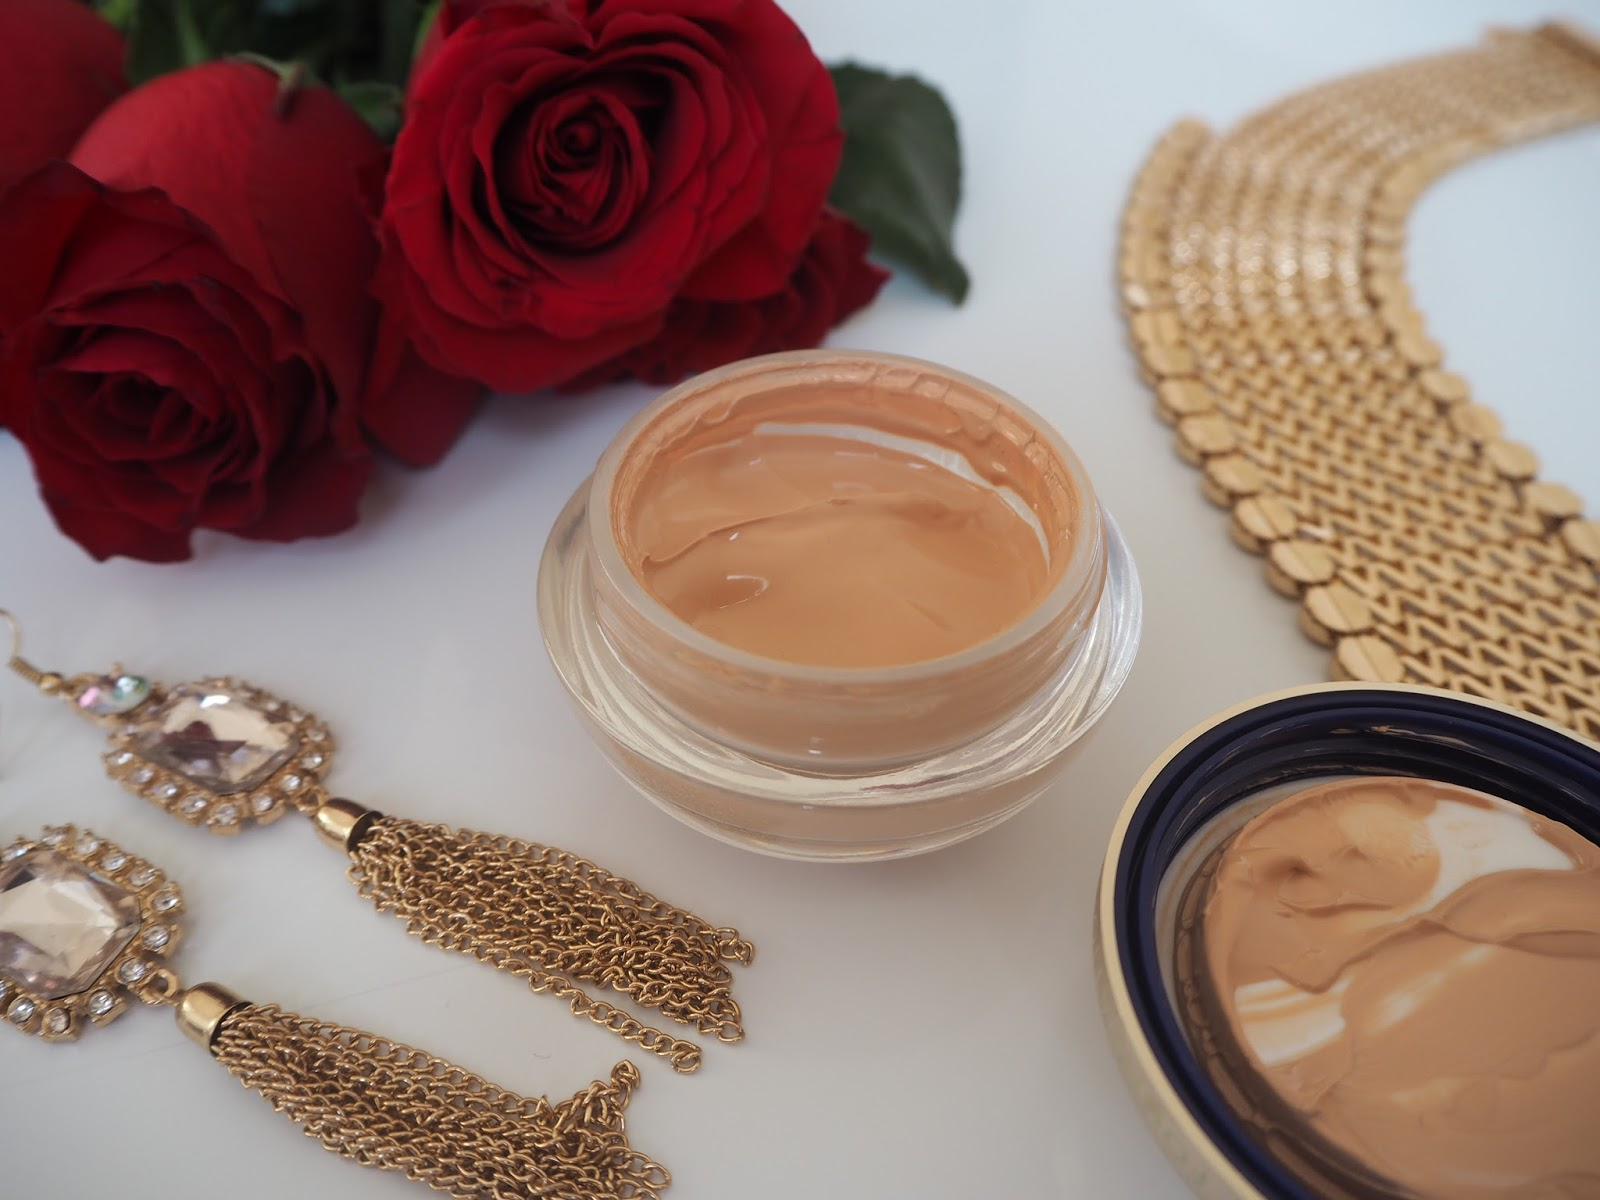 Guerlain Orchidée Impériale Cream Foundation review